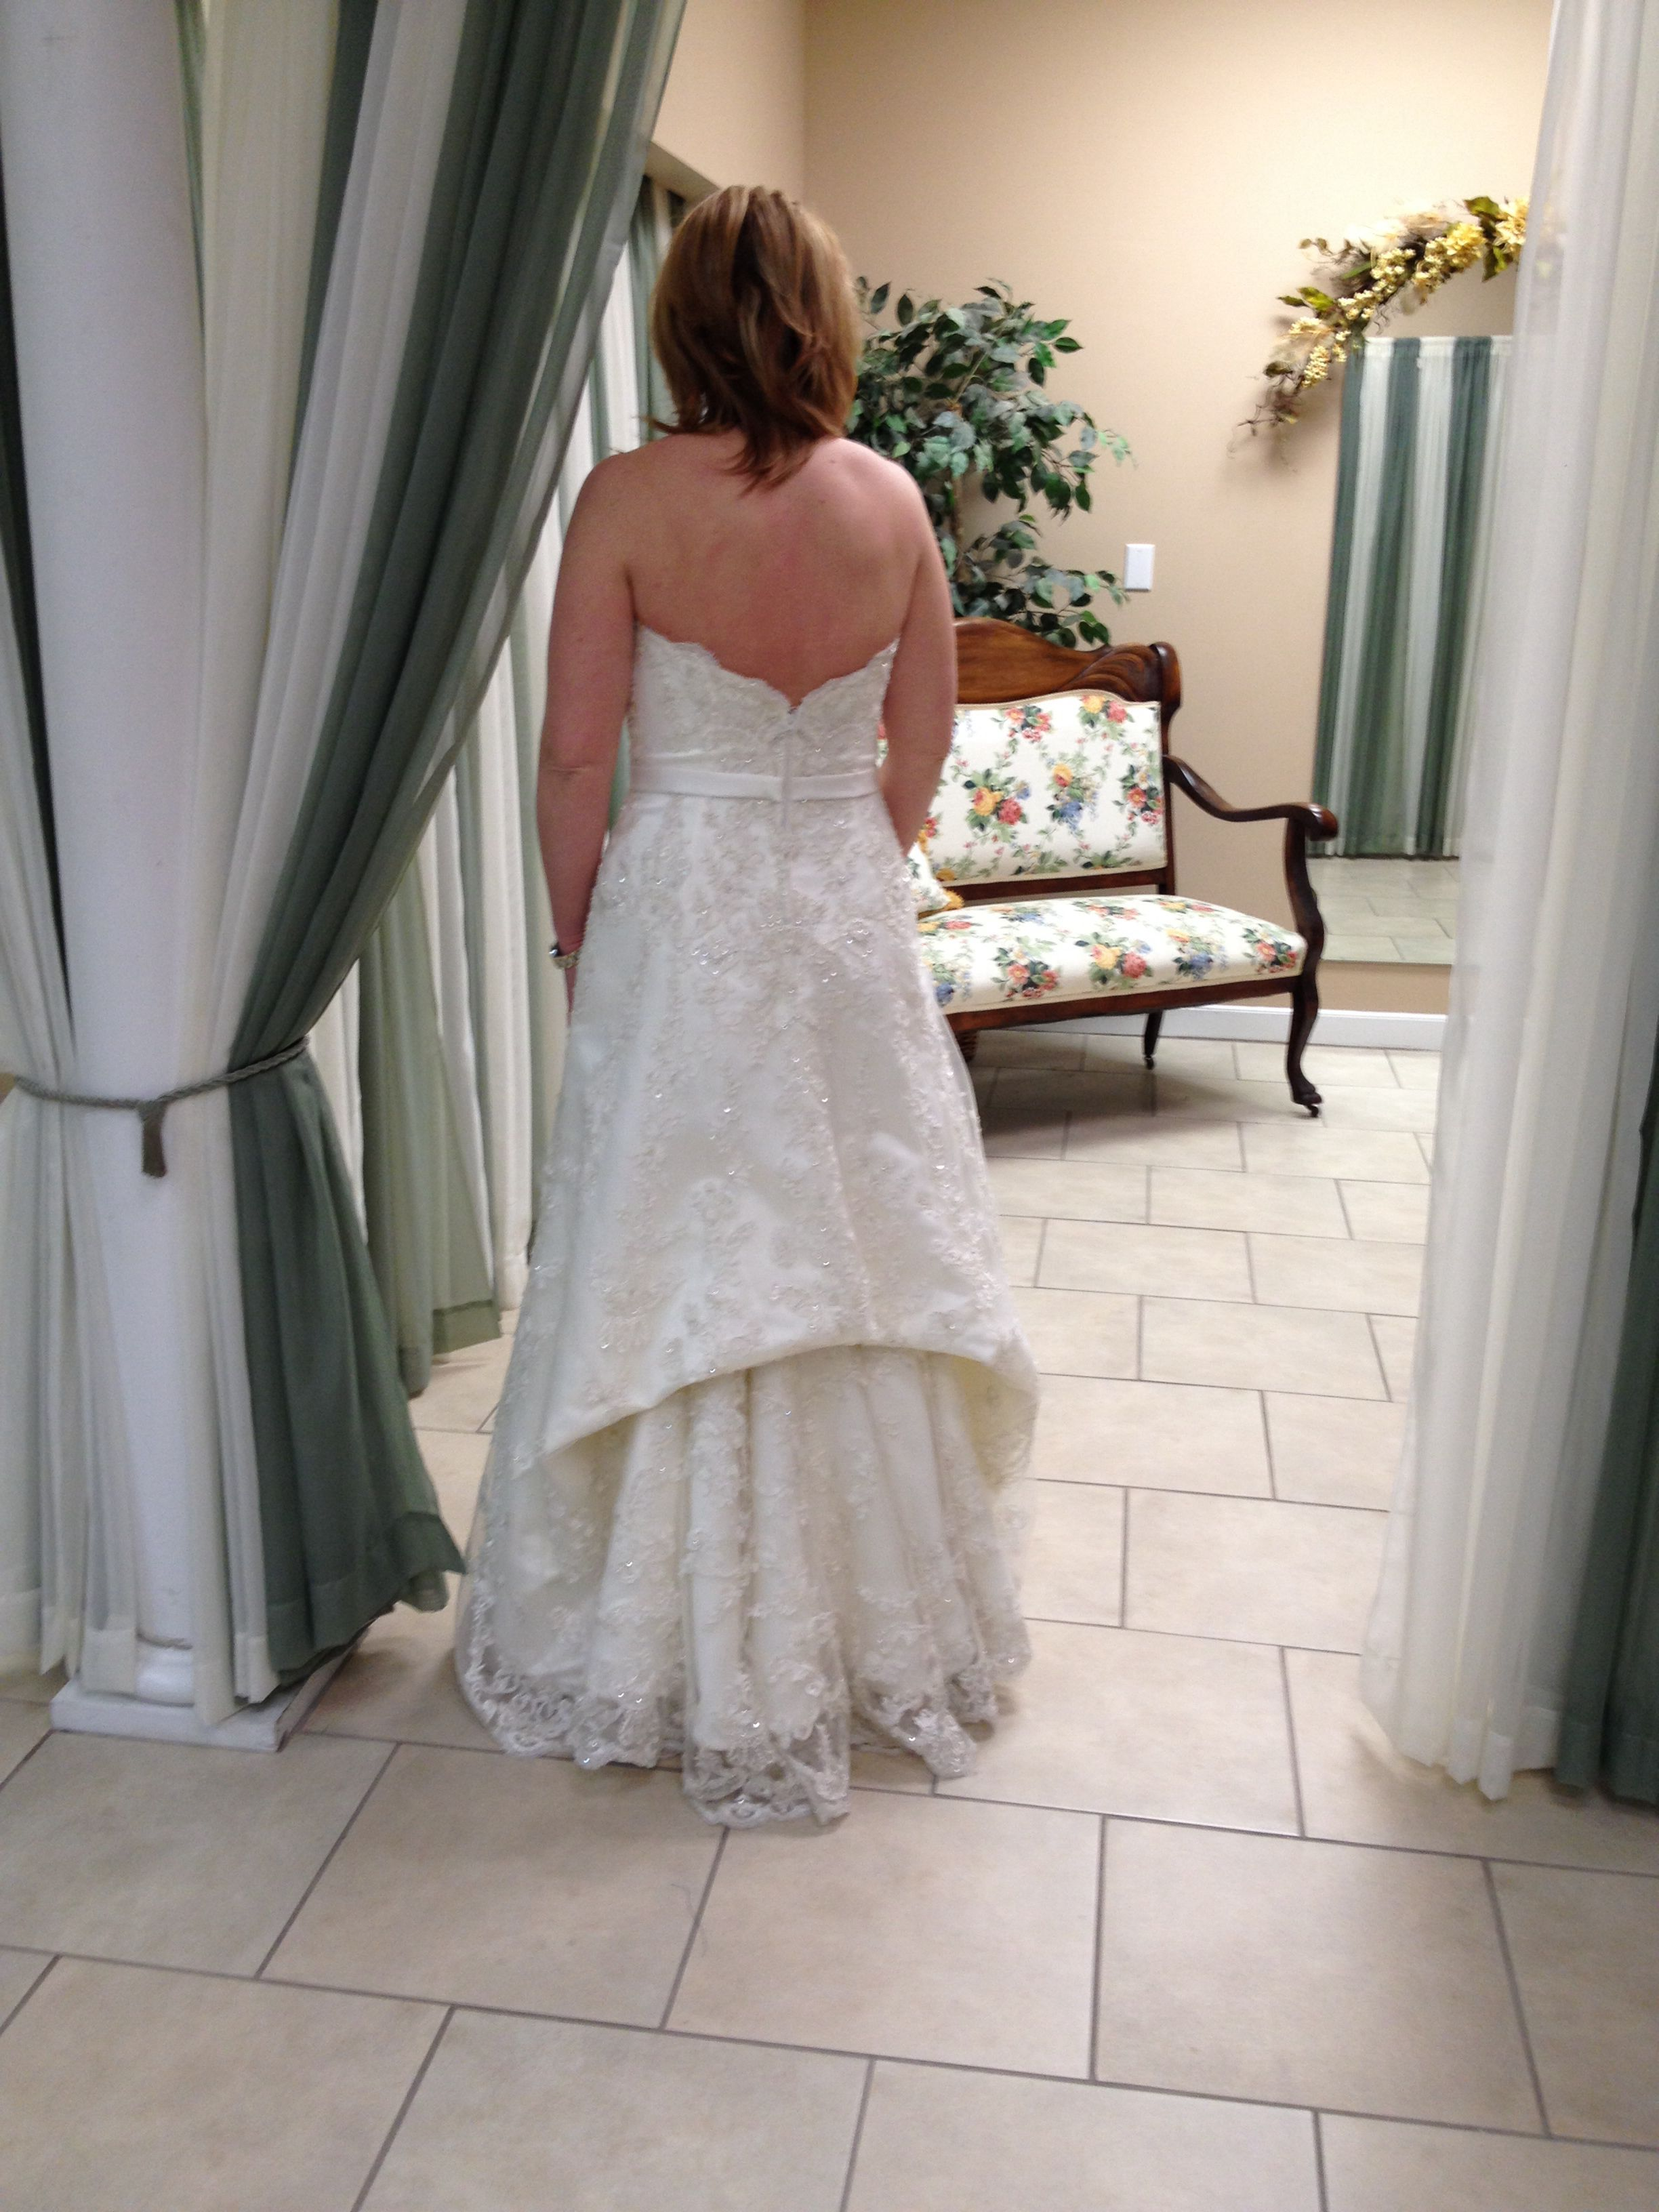 A Traditional French Bustle To Show Off The Lace Scalloped Hem